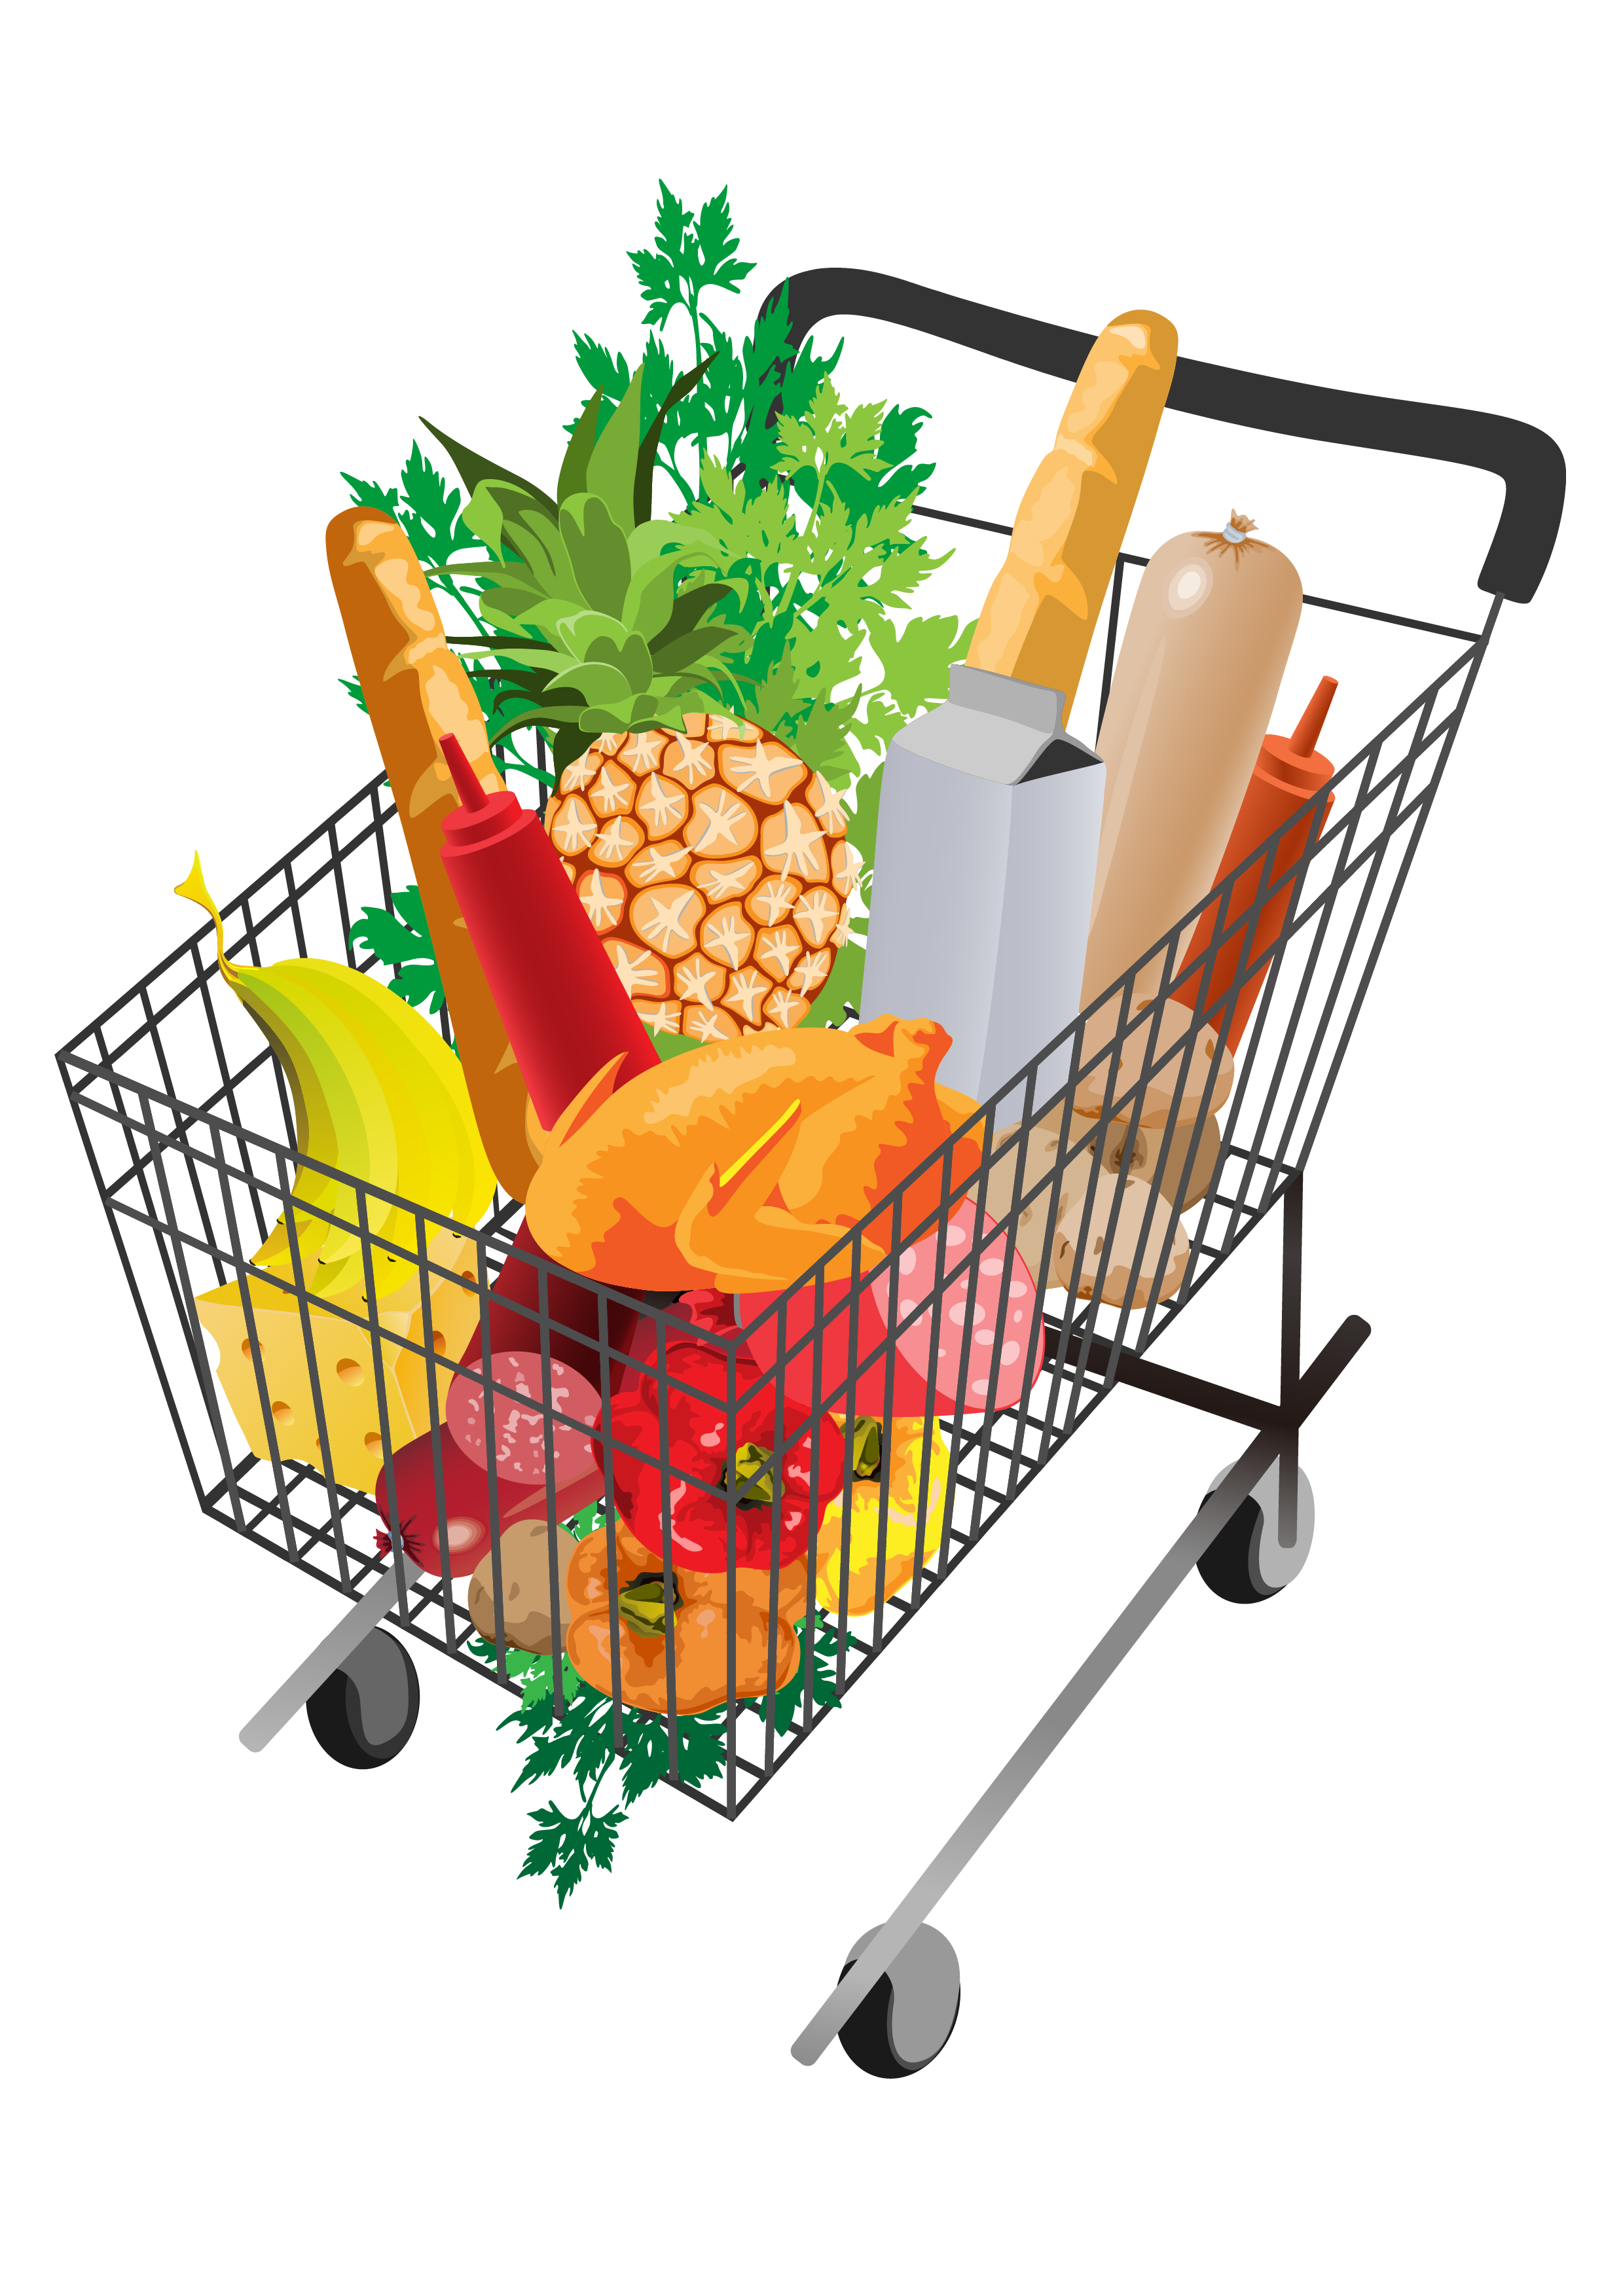 Groceries vector transparent background. Grocery shopping cart png